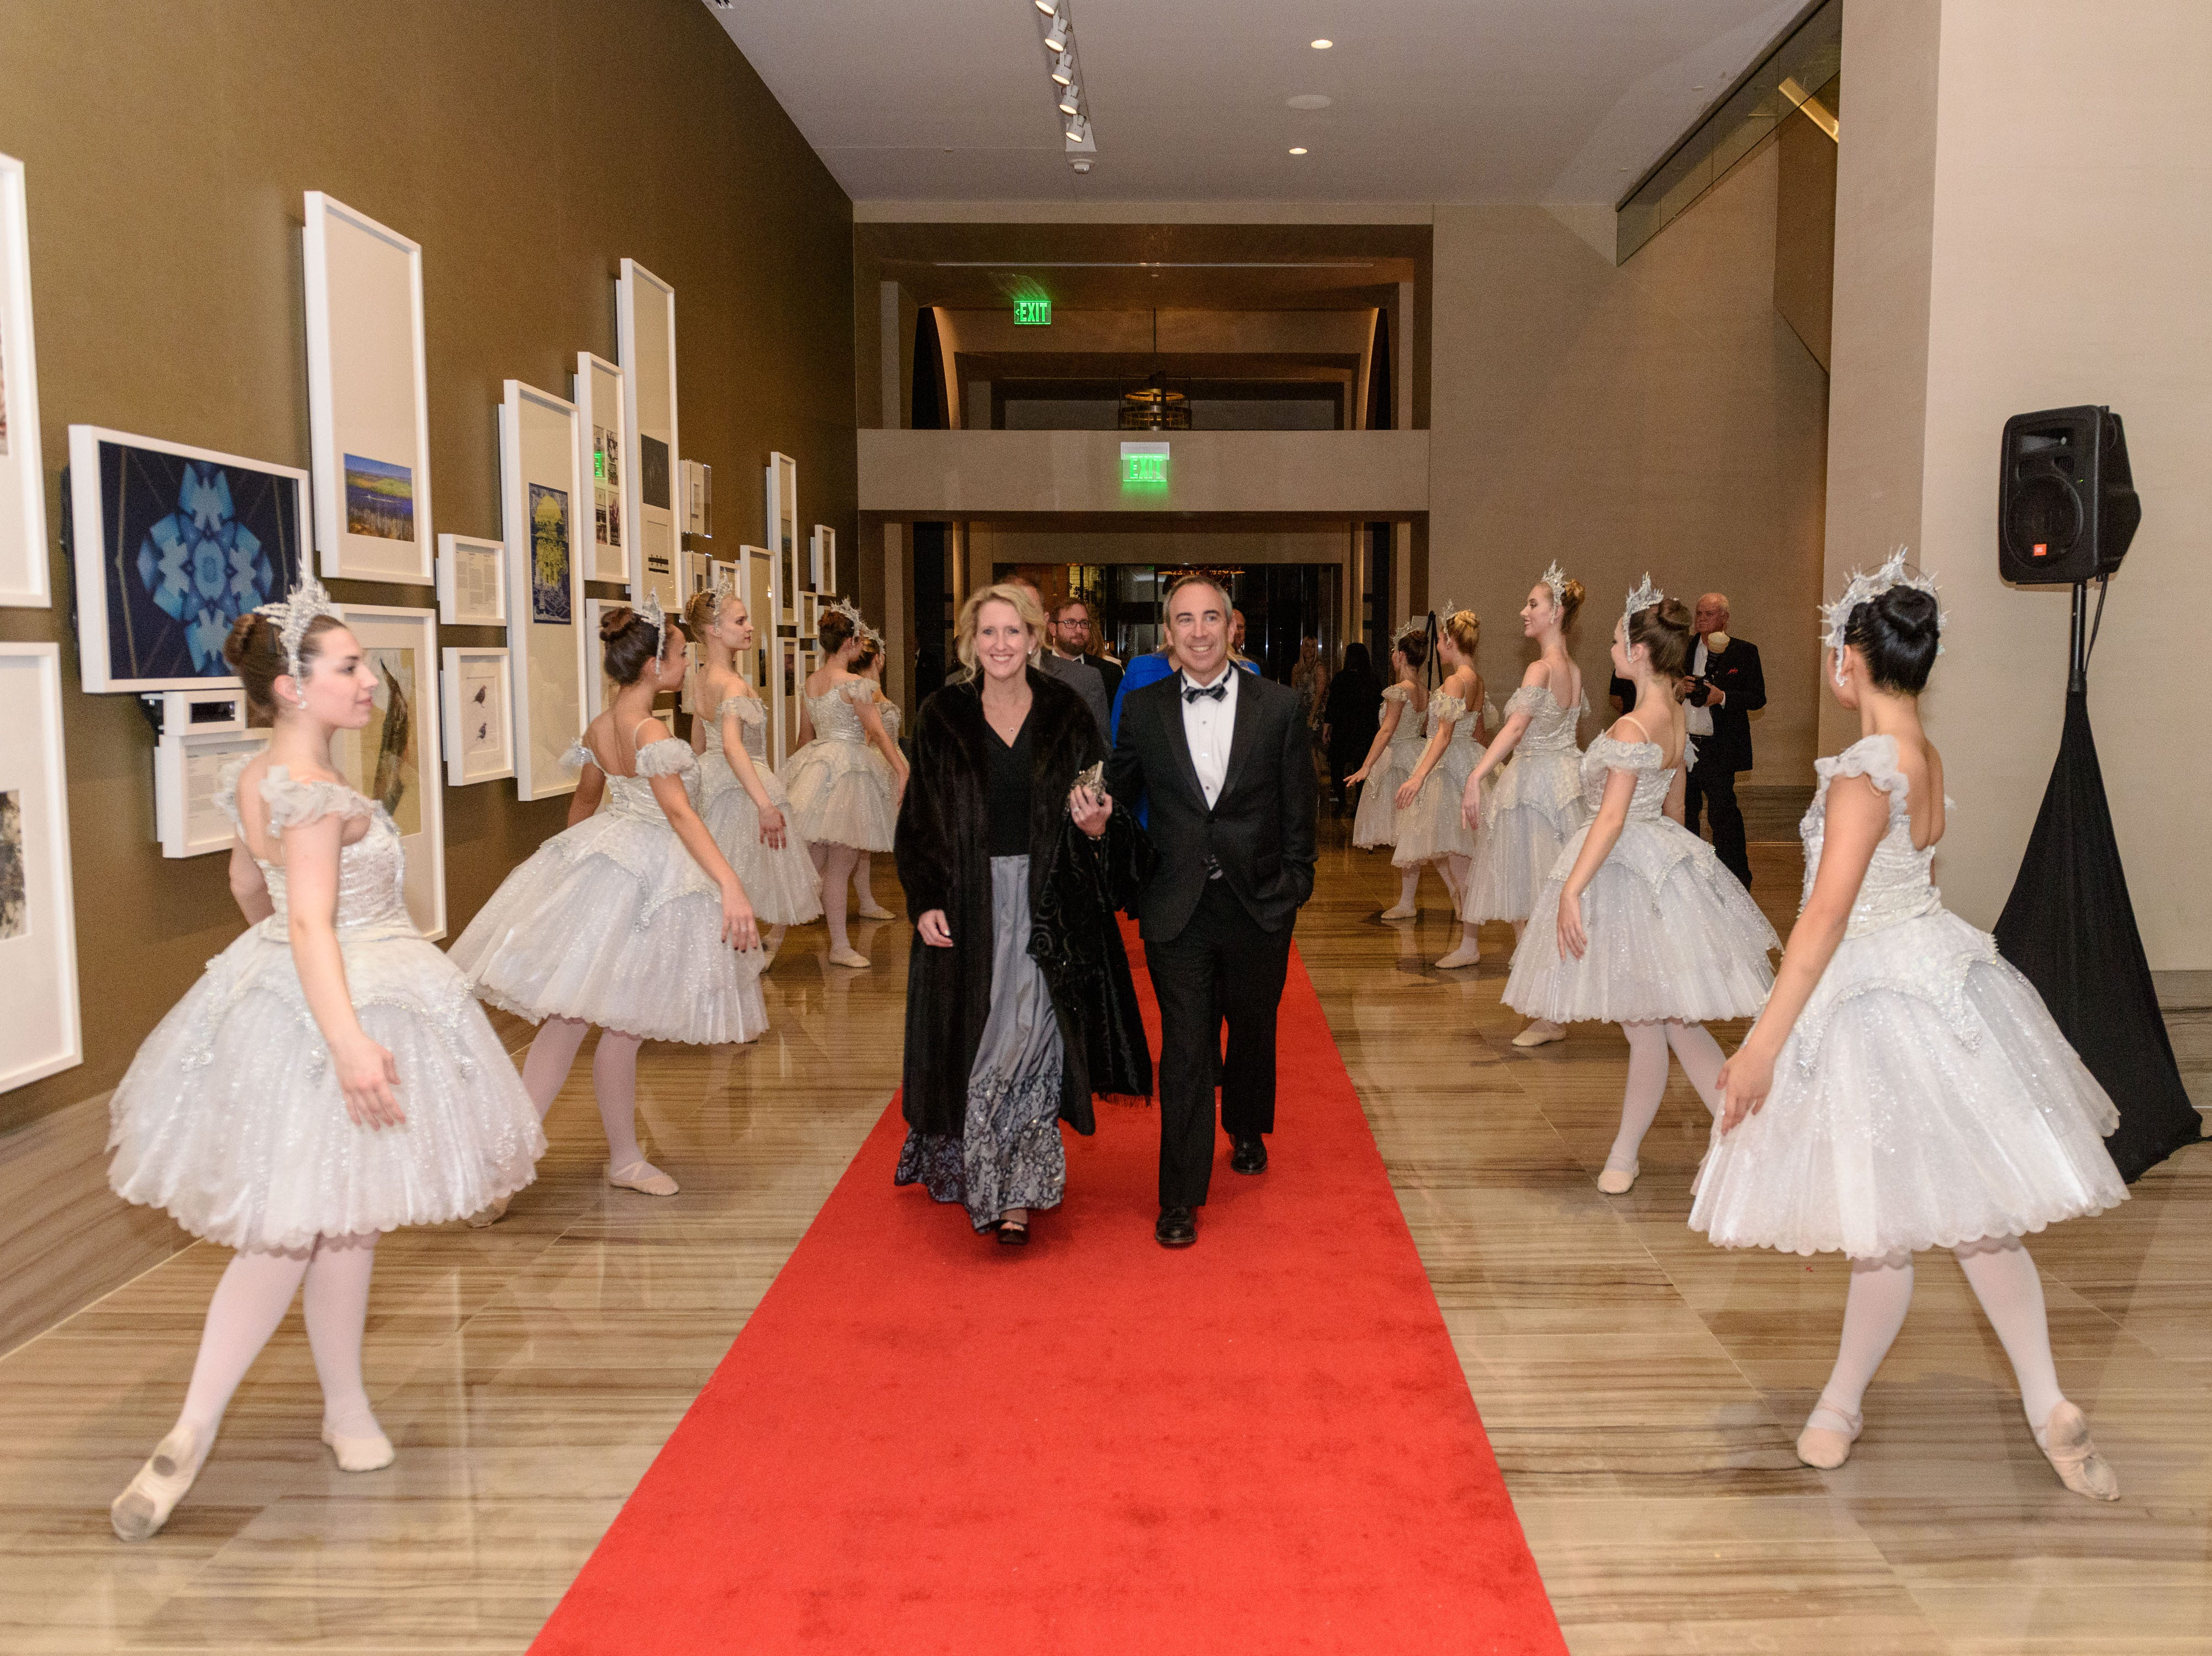 Amy and Lee Garlove walk the red carpets lined with Louisville Ballet dancers at the Snow Ball Gala at the Omni Hotel, a benefit for the Jennifer Lawrence Cardiac Intensive Care Unit (CICU) at Norton ChildrenÕs Hospital. Nov. 17, 2018